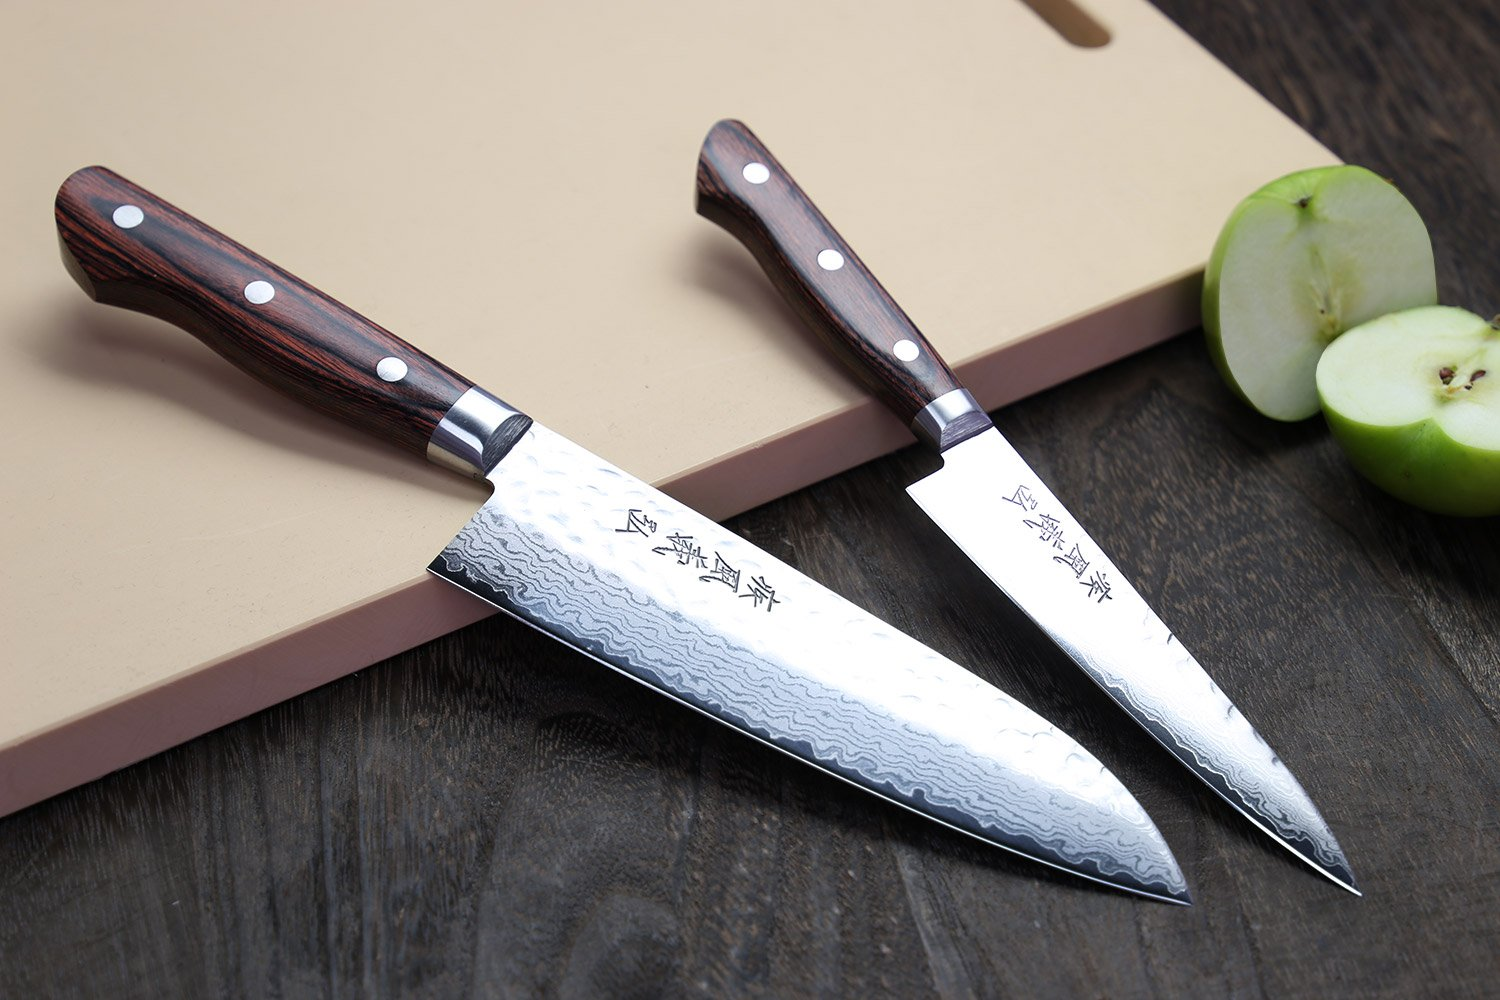 Yoshihiro Vg10 Hammered Damascus Stainless Japanese Chefs Knife Santoku 7Inch and Petty Set (Set)